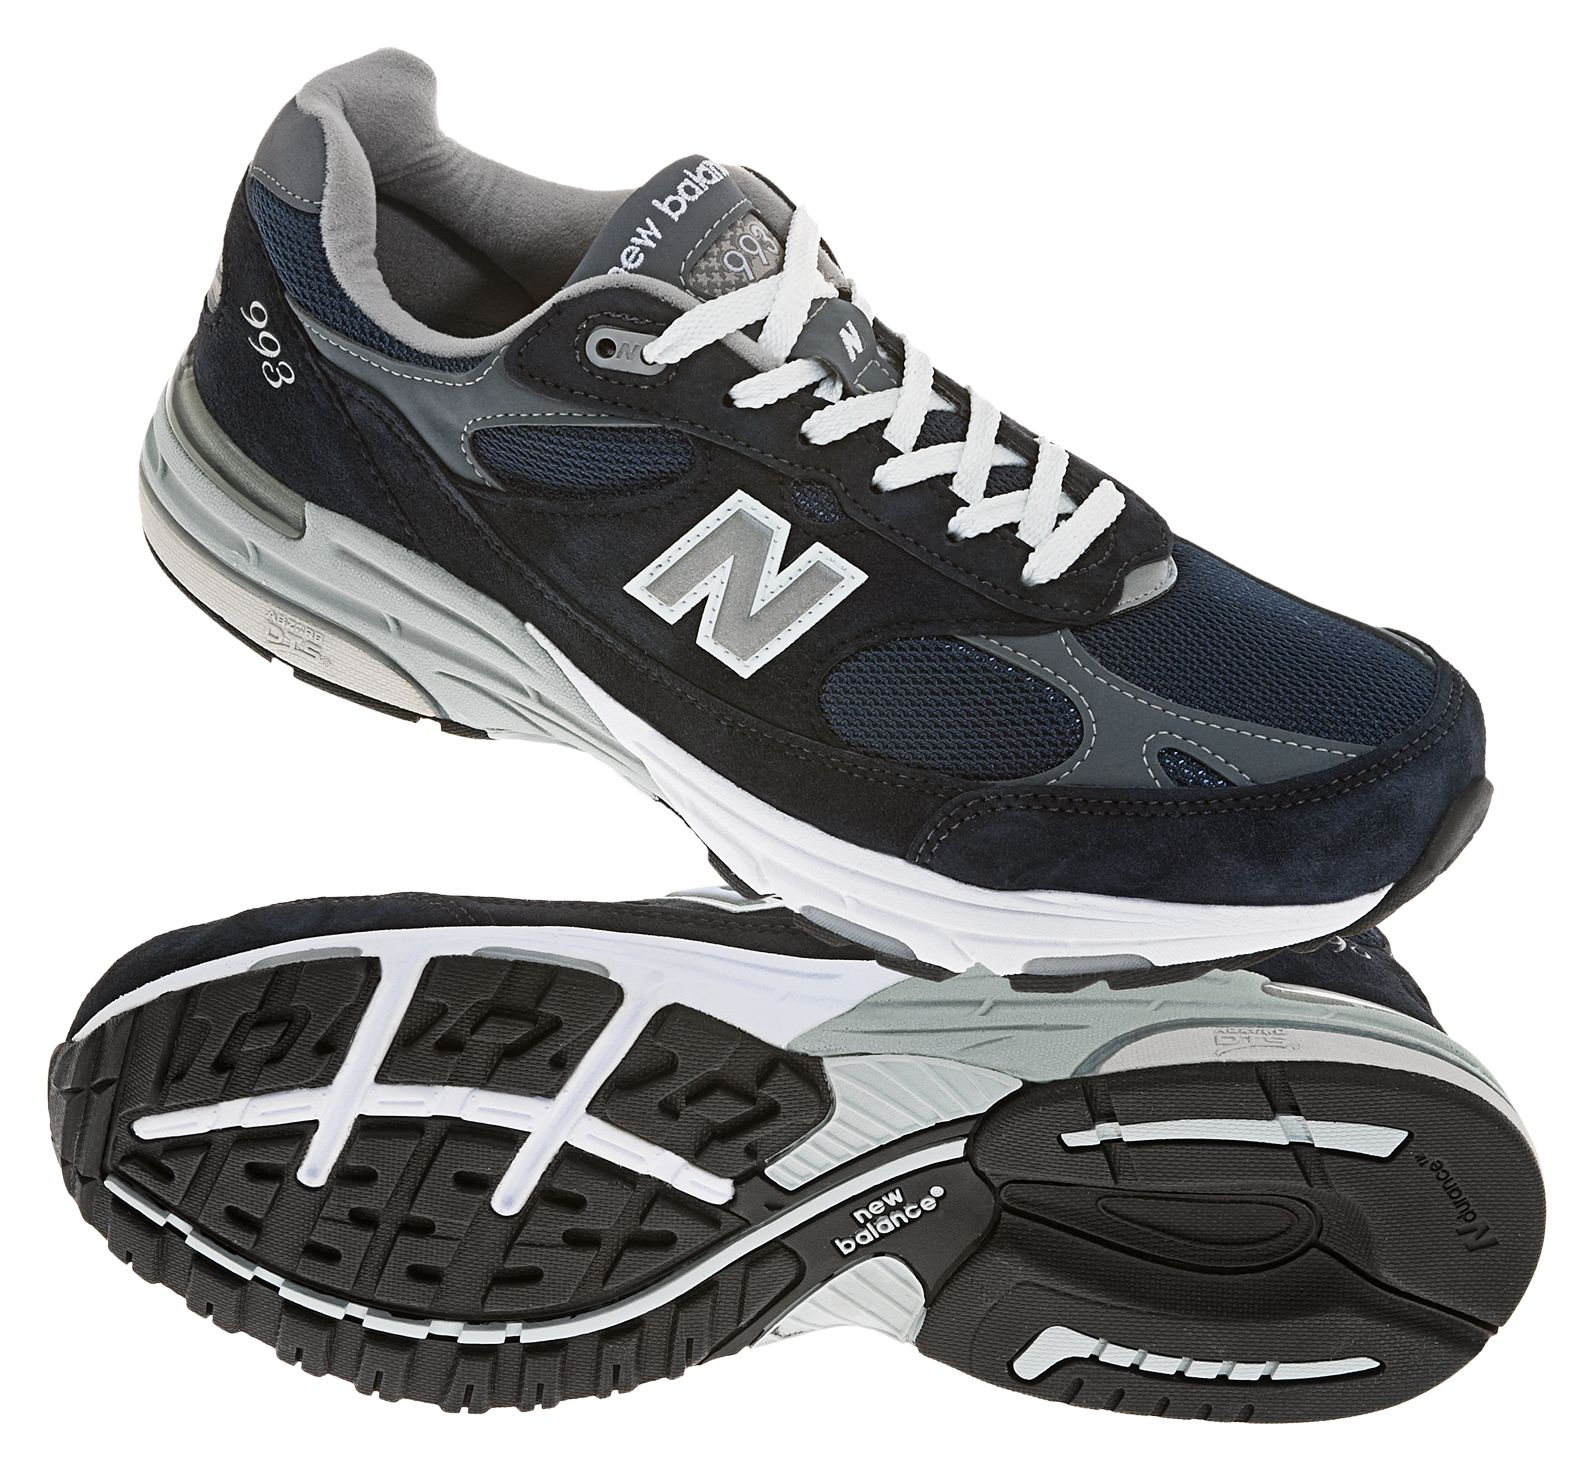 on sale 9e4fd 59b87 new balance tennis shoes new balance shoes made in – Getfash ...